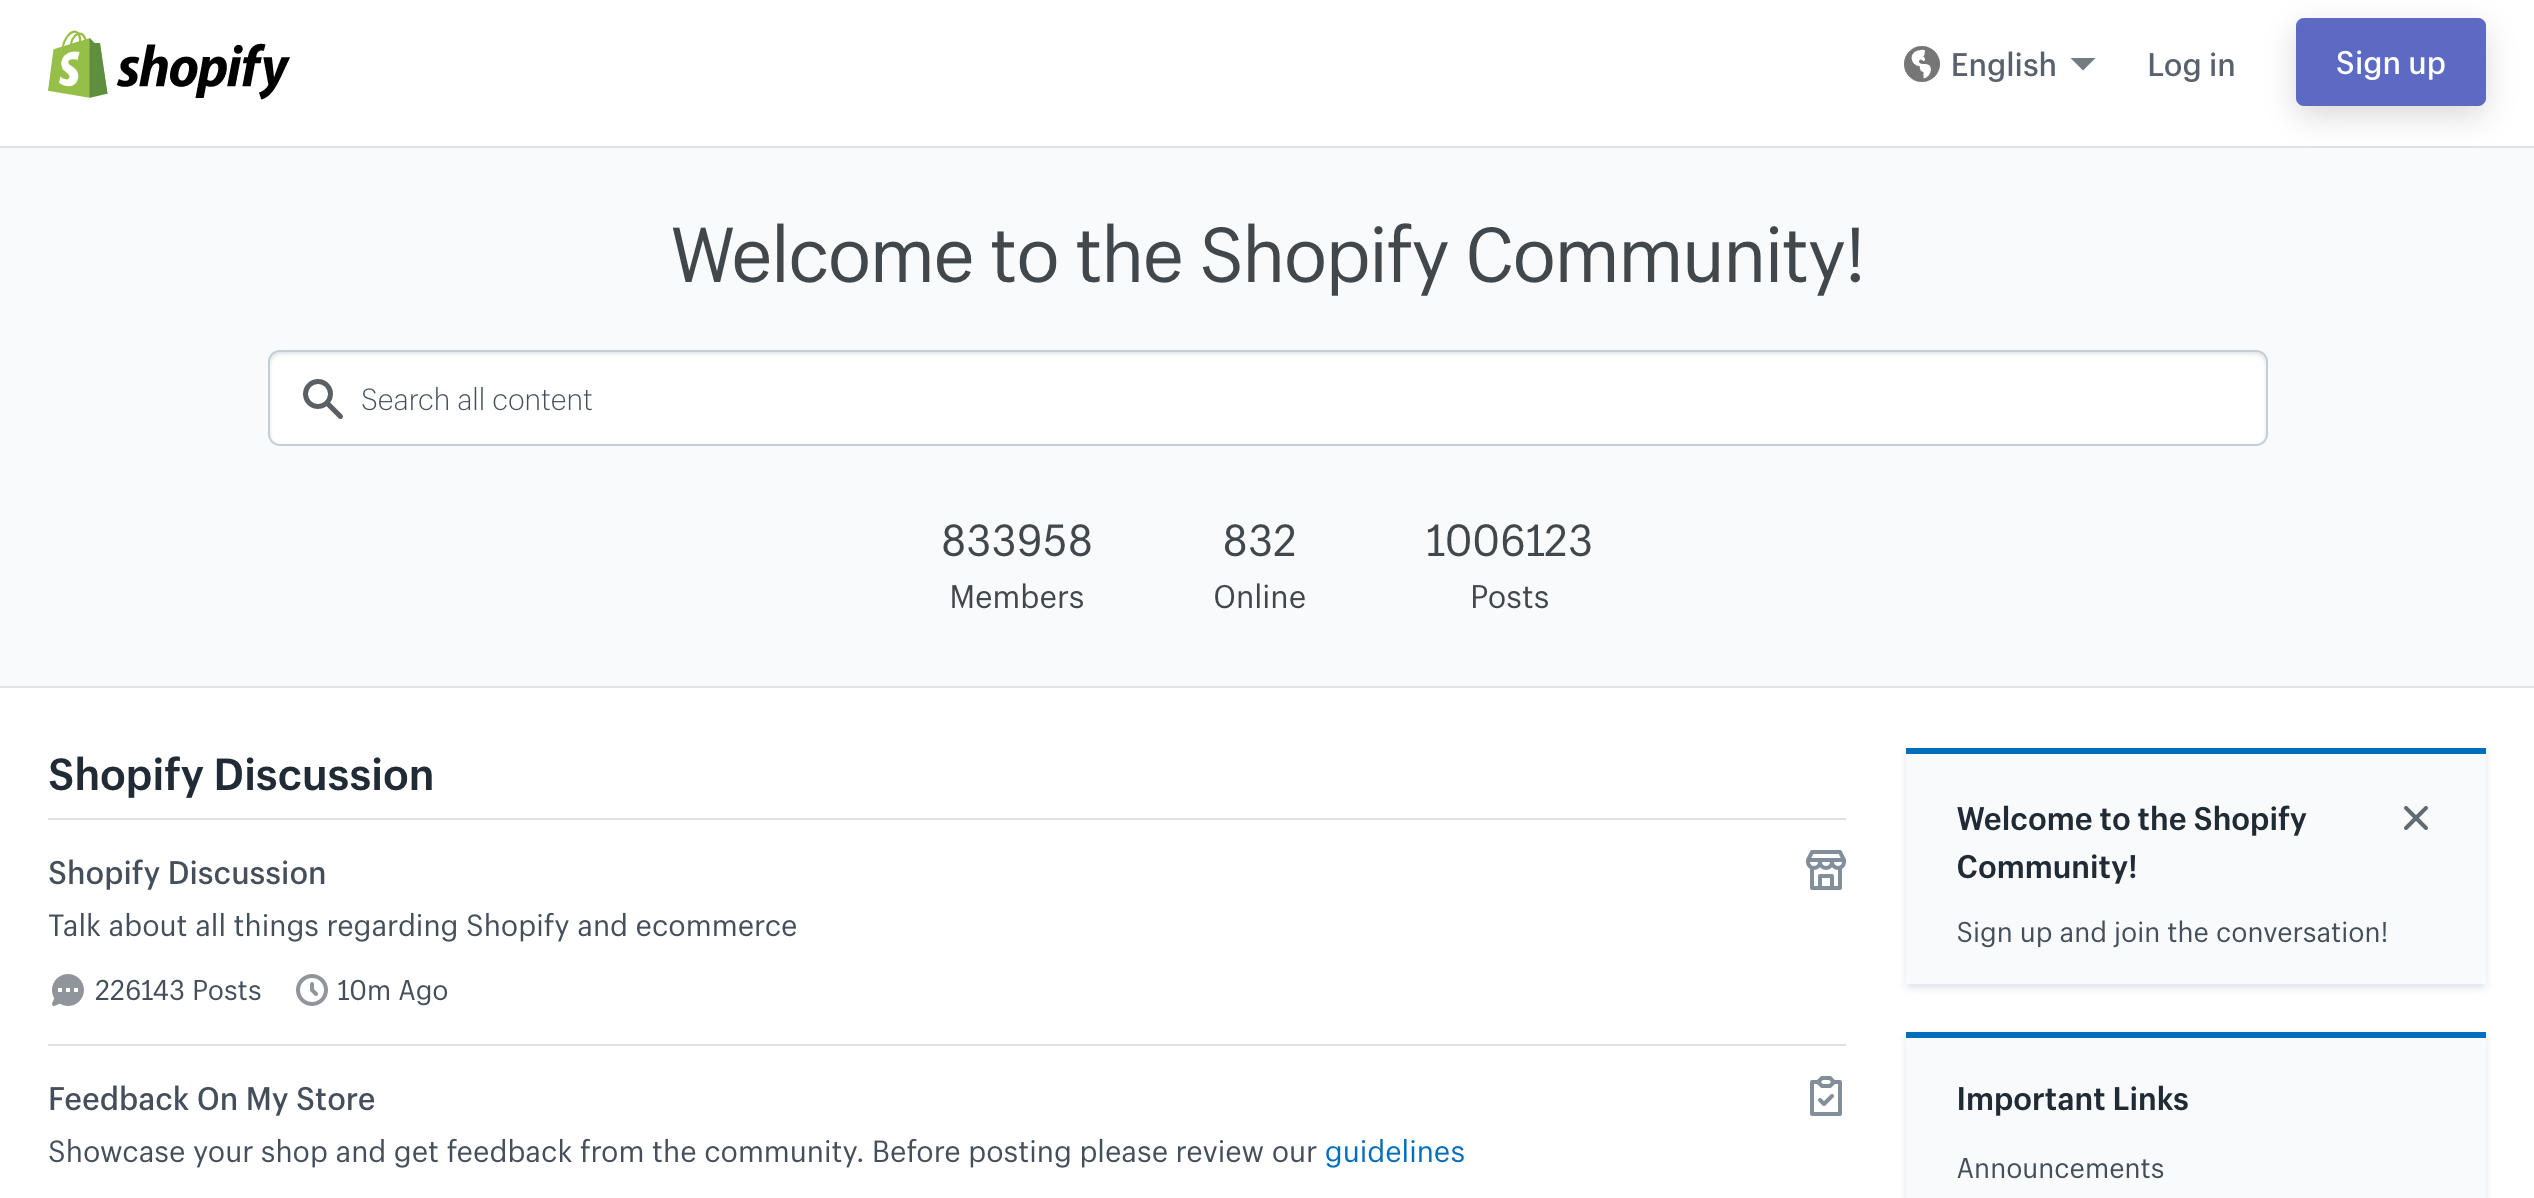 shopify community success story of shopify available countries